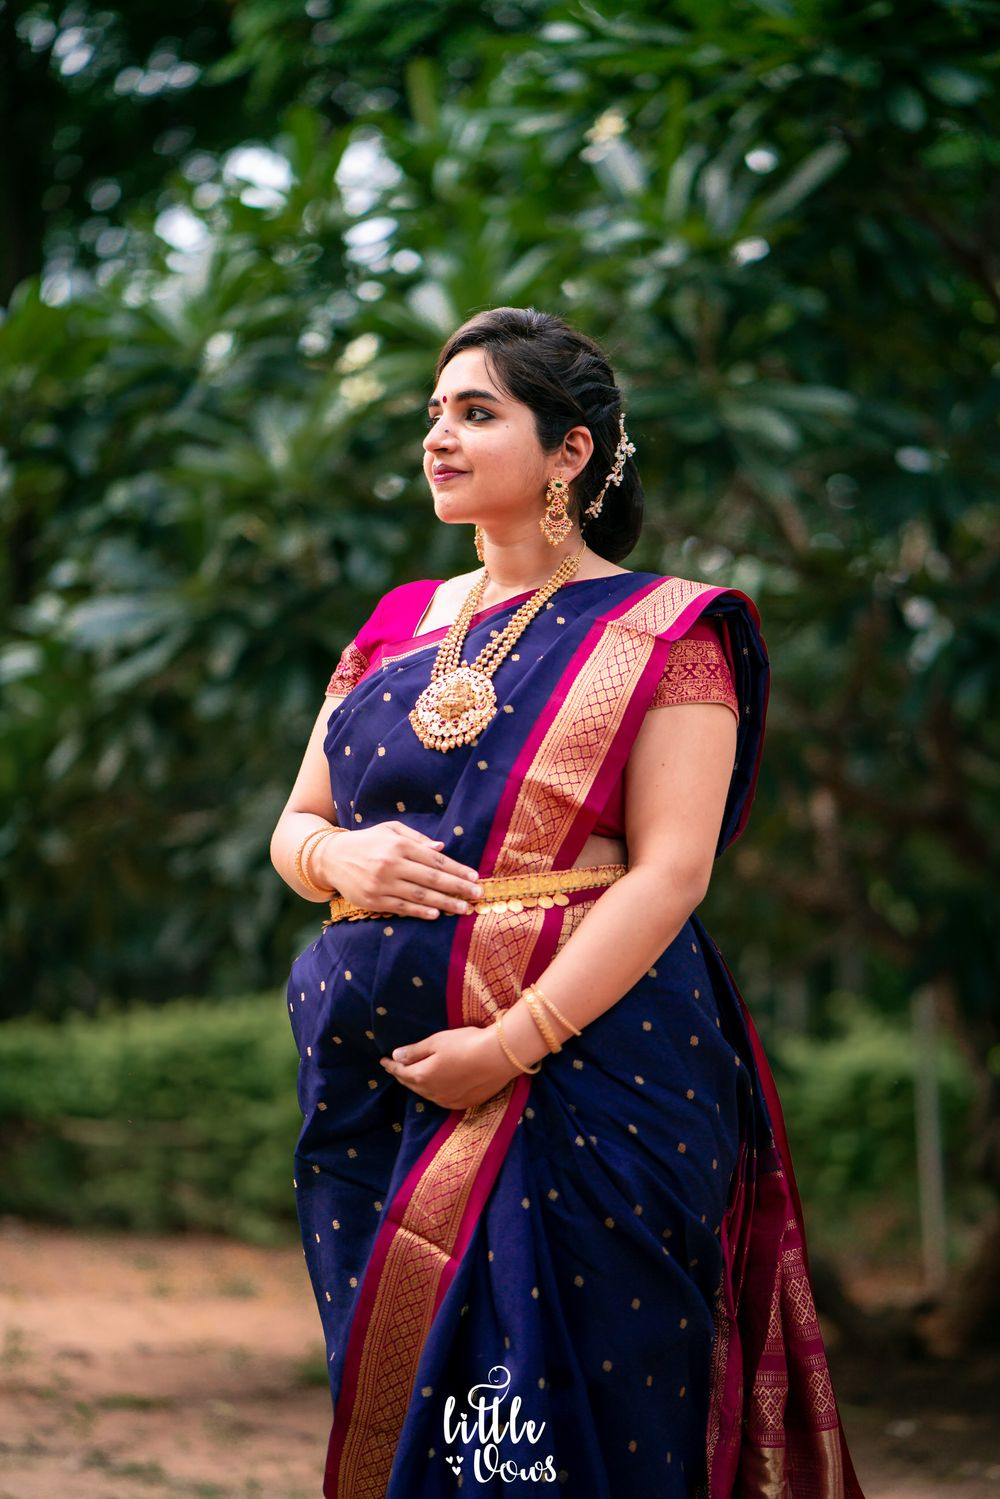 maternity photoshoot in hyderabad, pregnancy photoshoot in hyderabad